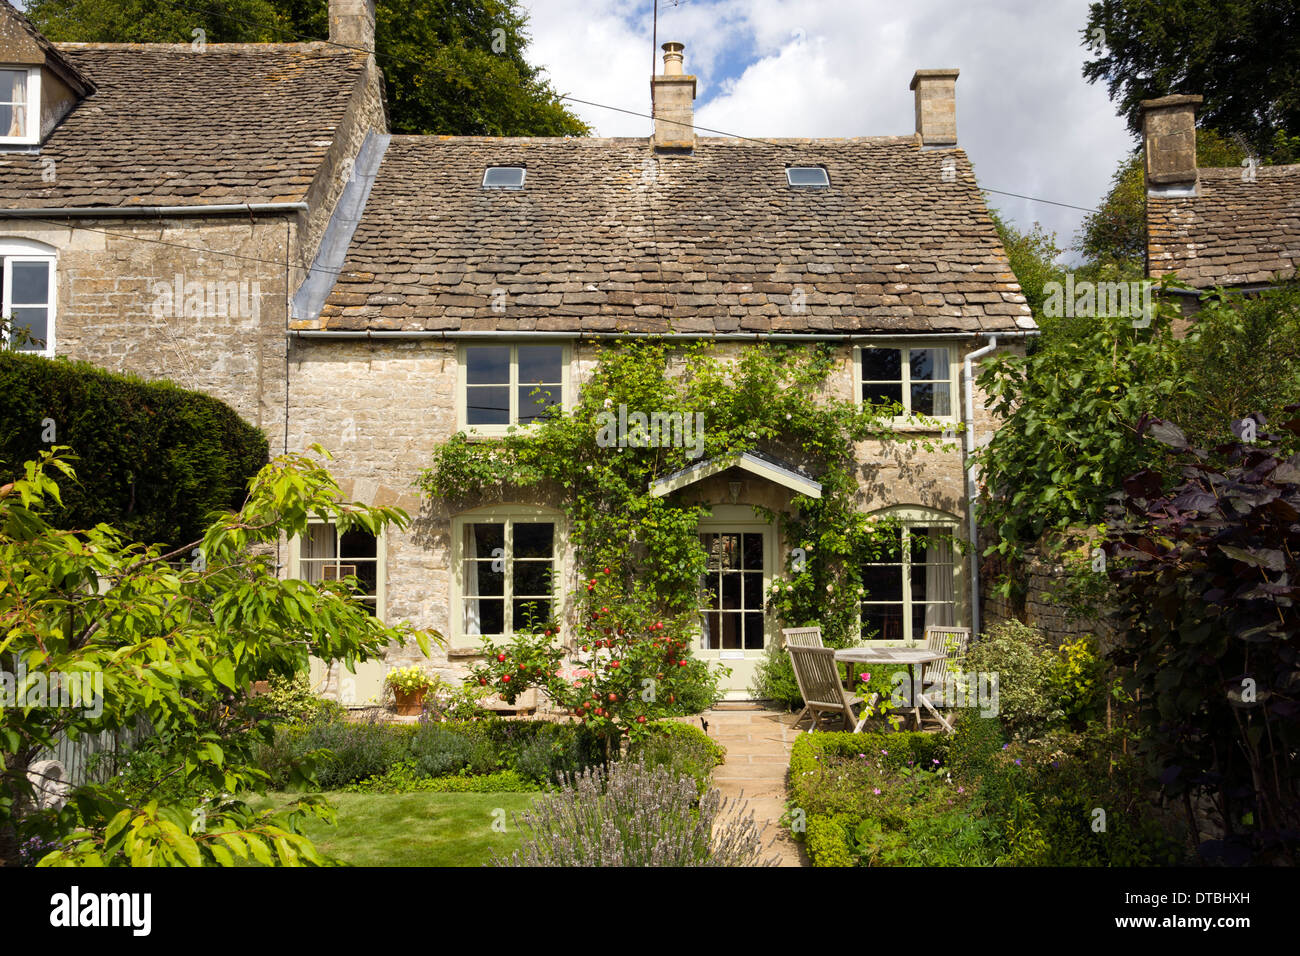 Uk Real Estate Idyllic Small Cotswold Cottage And Garden